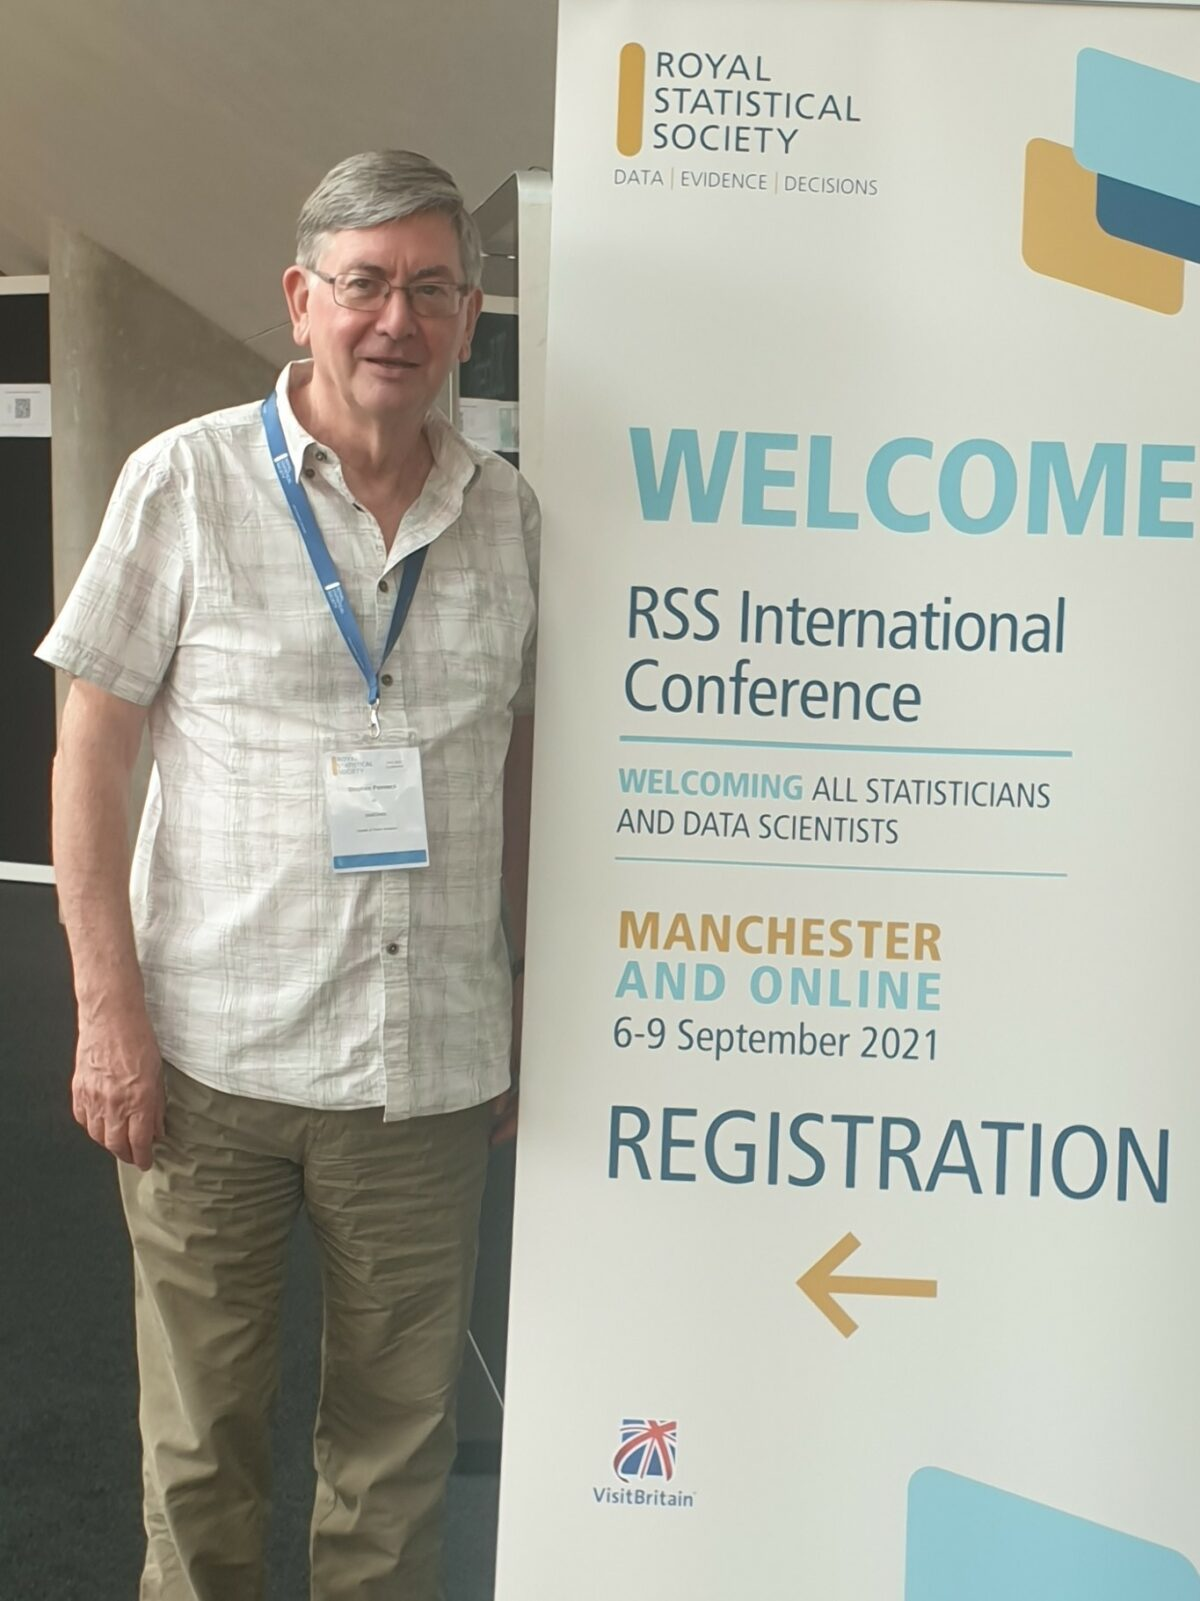 The joy of meeting statisticians!